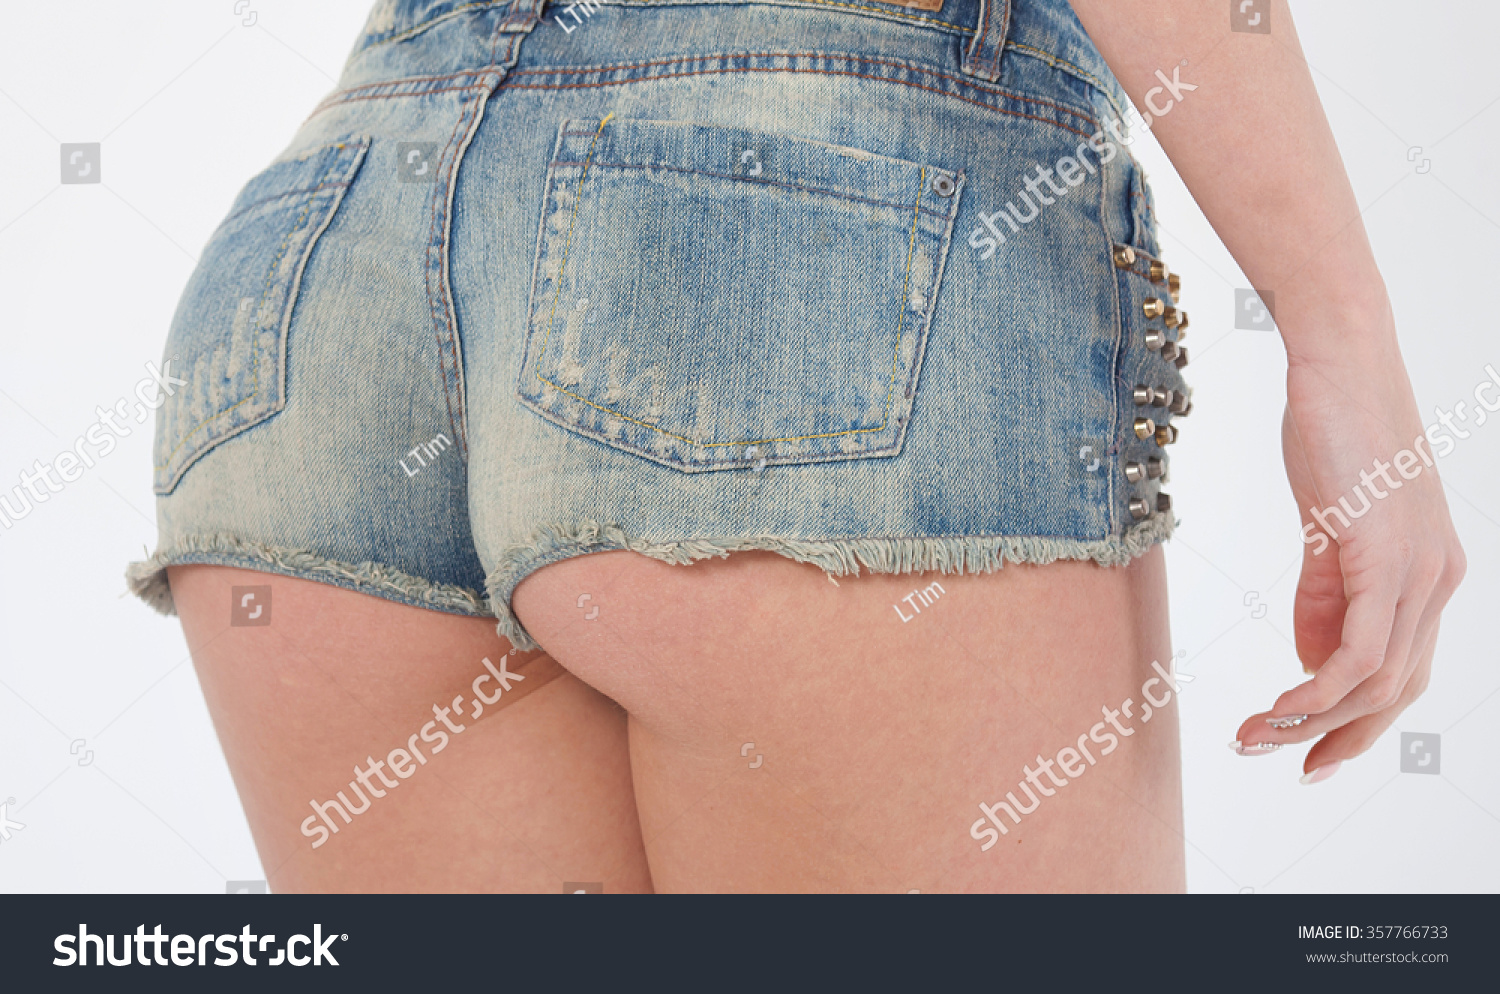 sexy woman body jean shorts models stock photo (100% legal